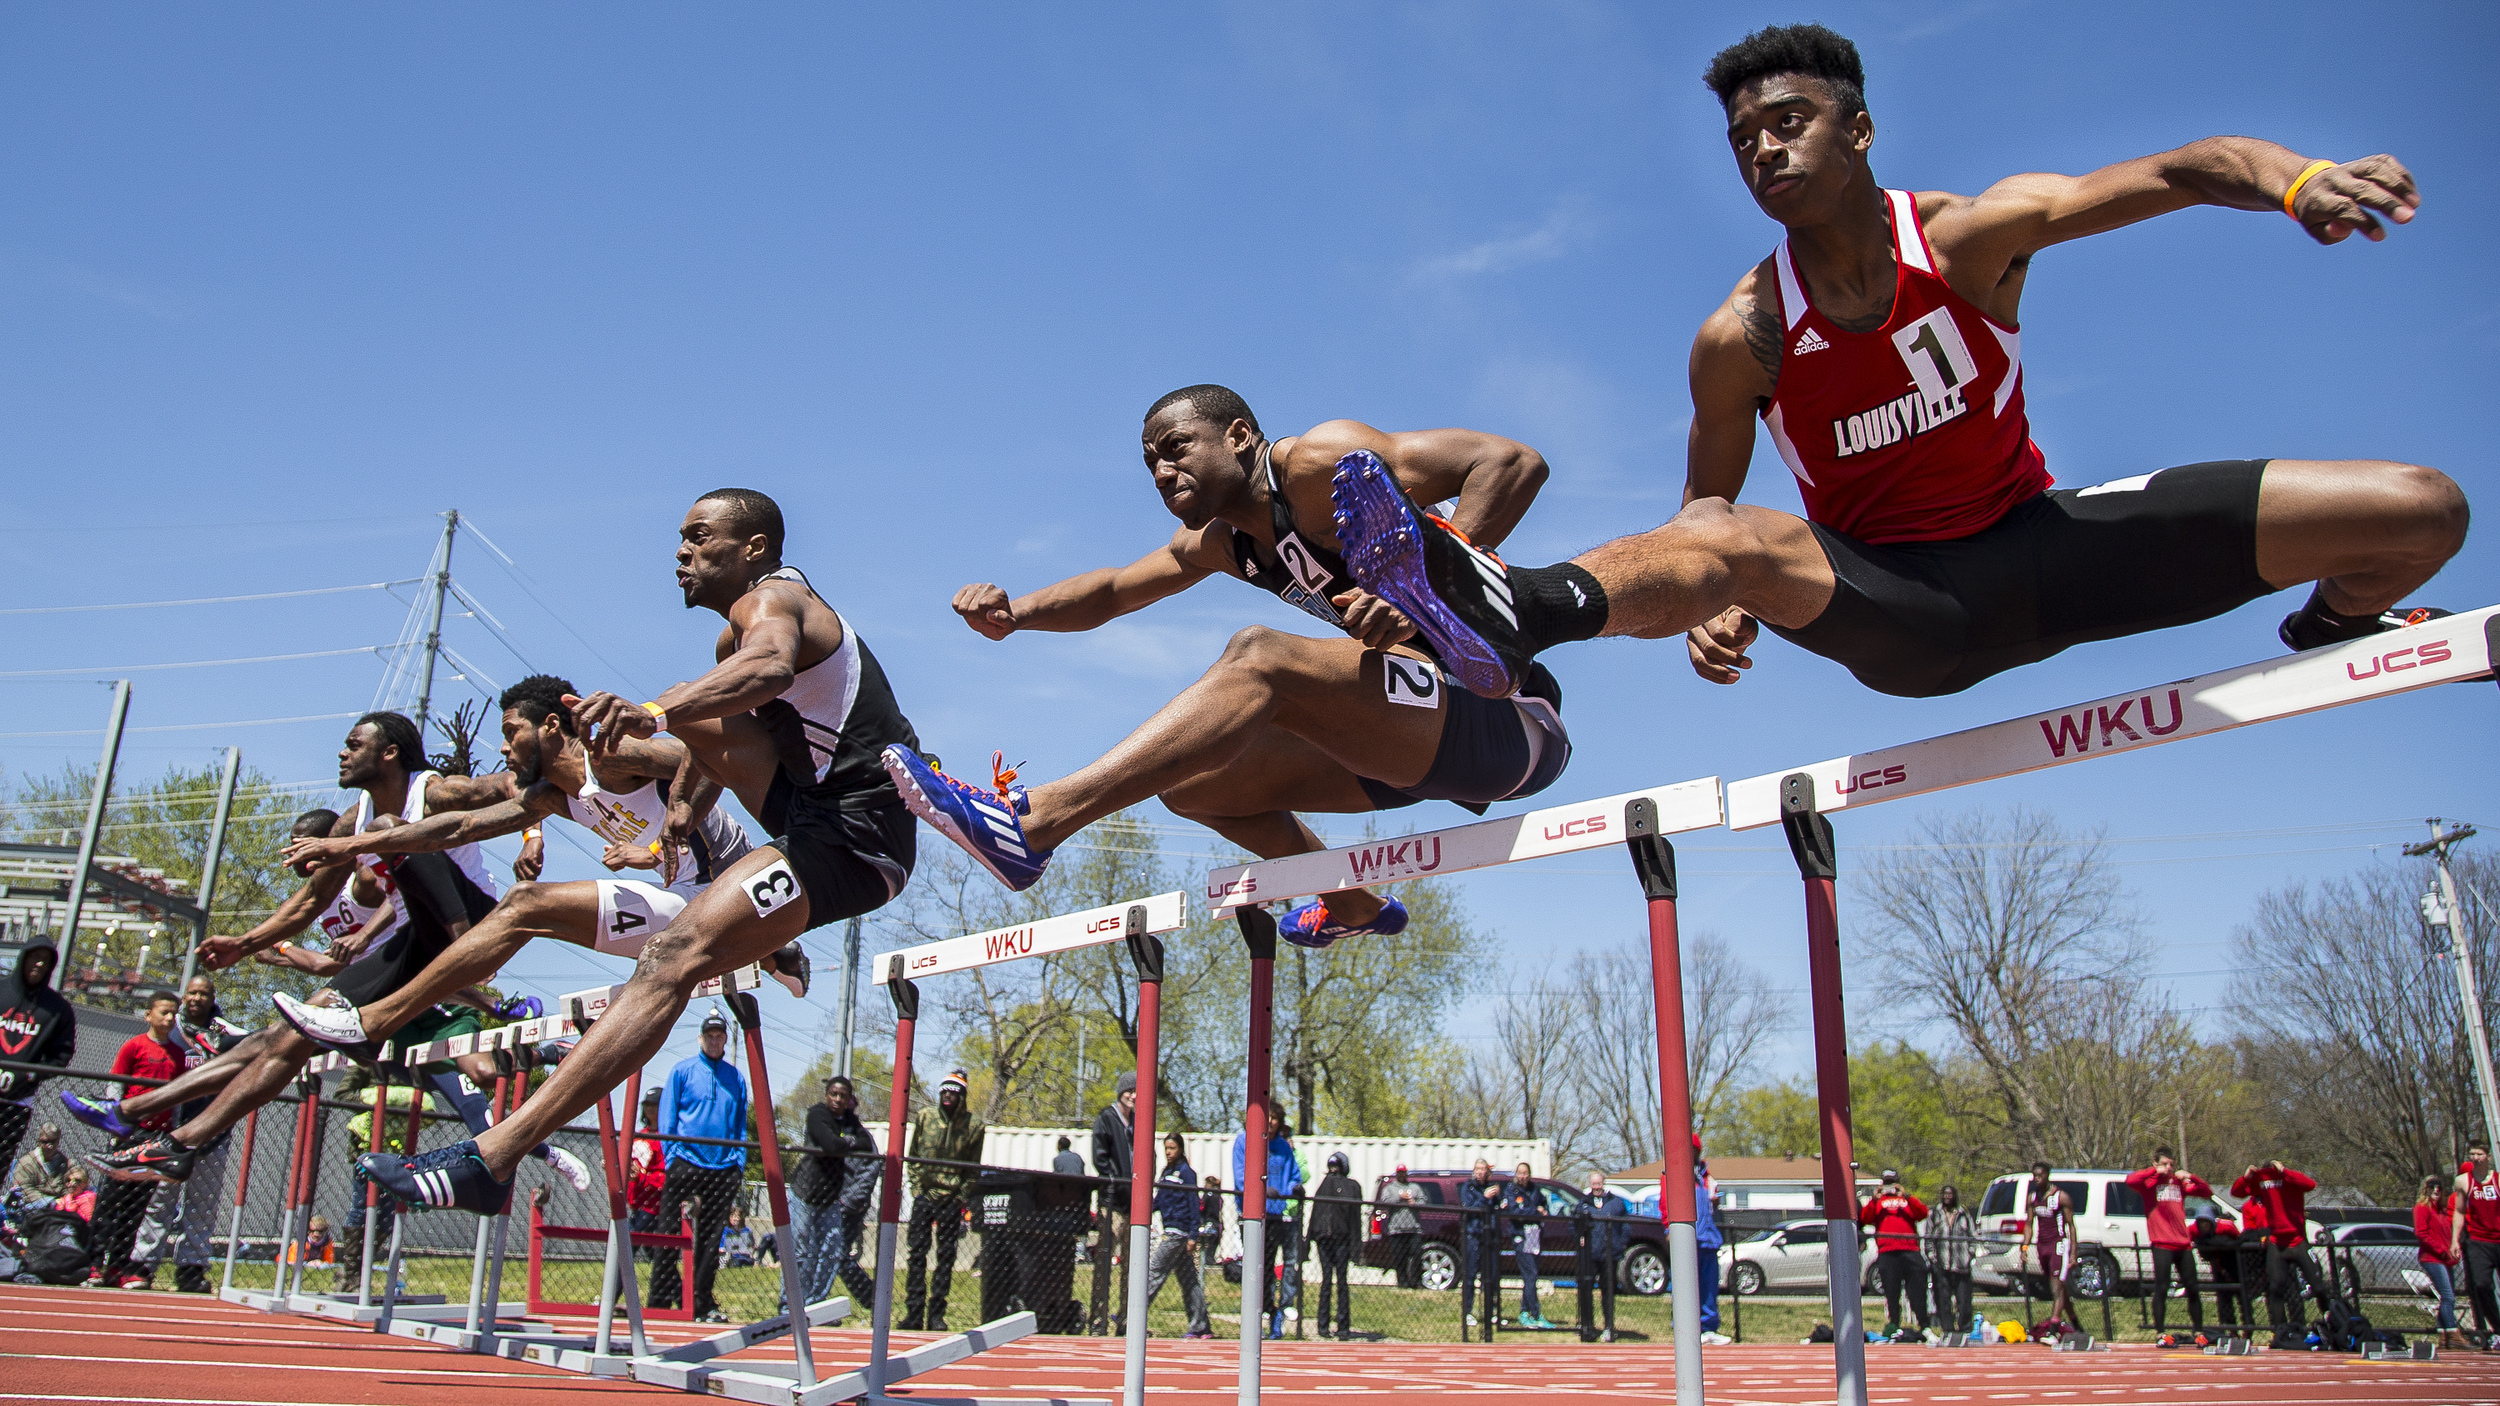 During the Men's 110 Meter Hurdles, Martice Moore, right, a freshman at University of Louisville, finished 6th with the time of 14.49 seconds at the Hilltopper Relay Meet at Charles M. Rueter Track and Field Complex on Saturday, April 9, 2016.